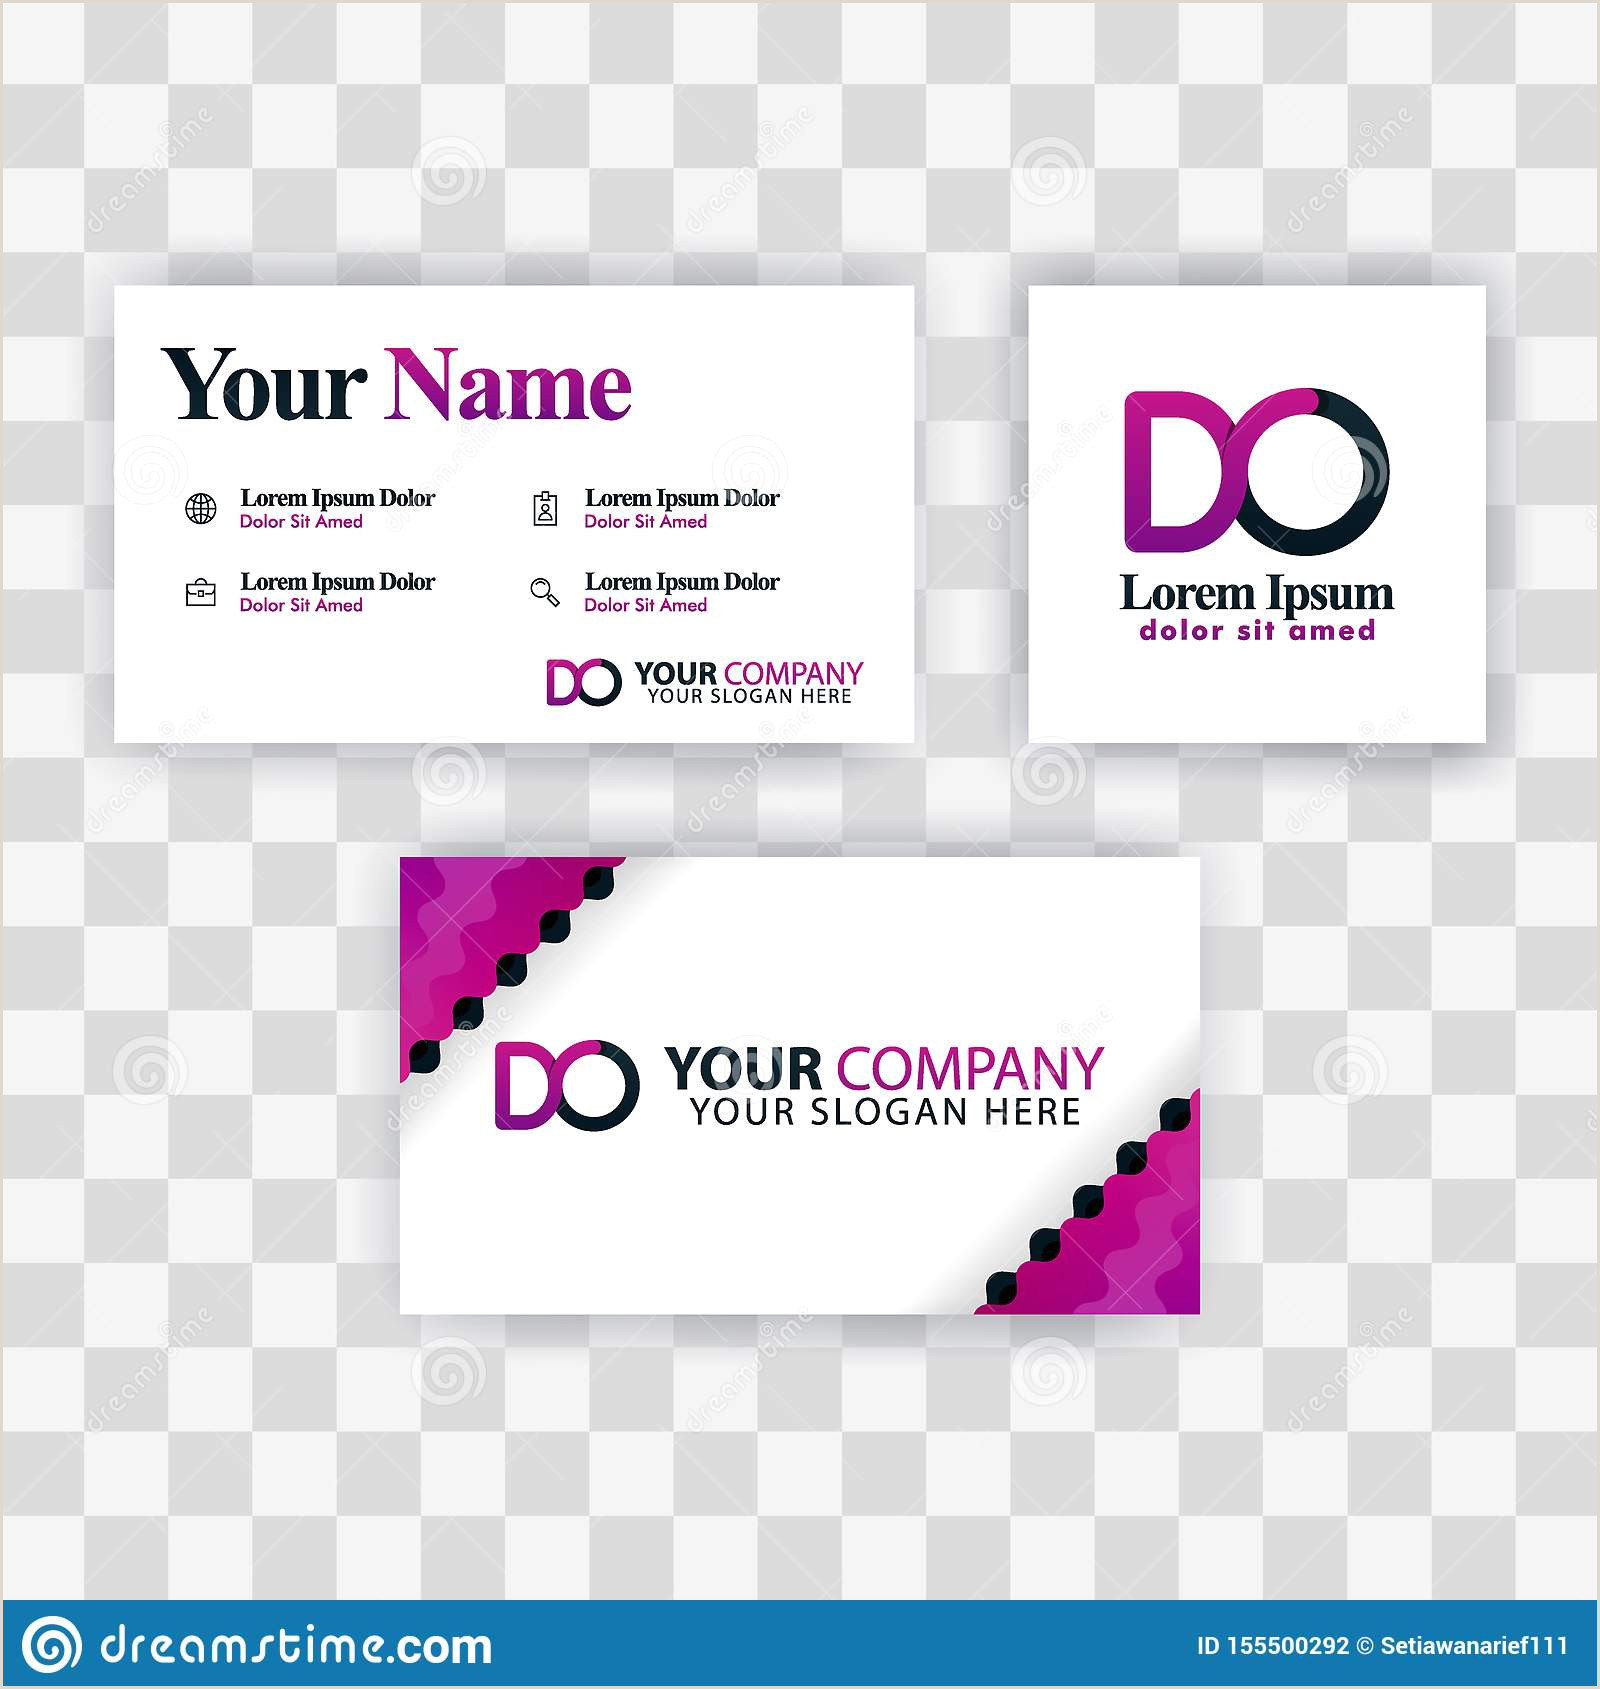 Cool Buisness Card Designs Clean Business Card Template Concept Vector Purple Modern